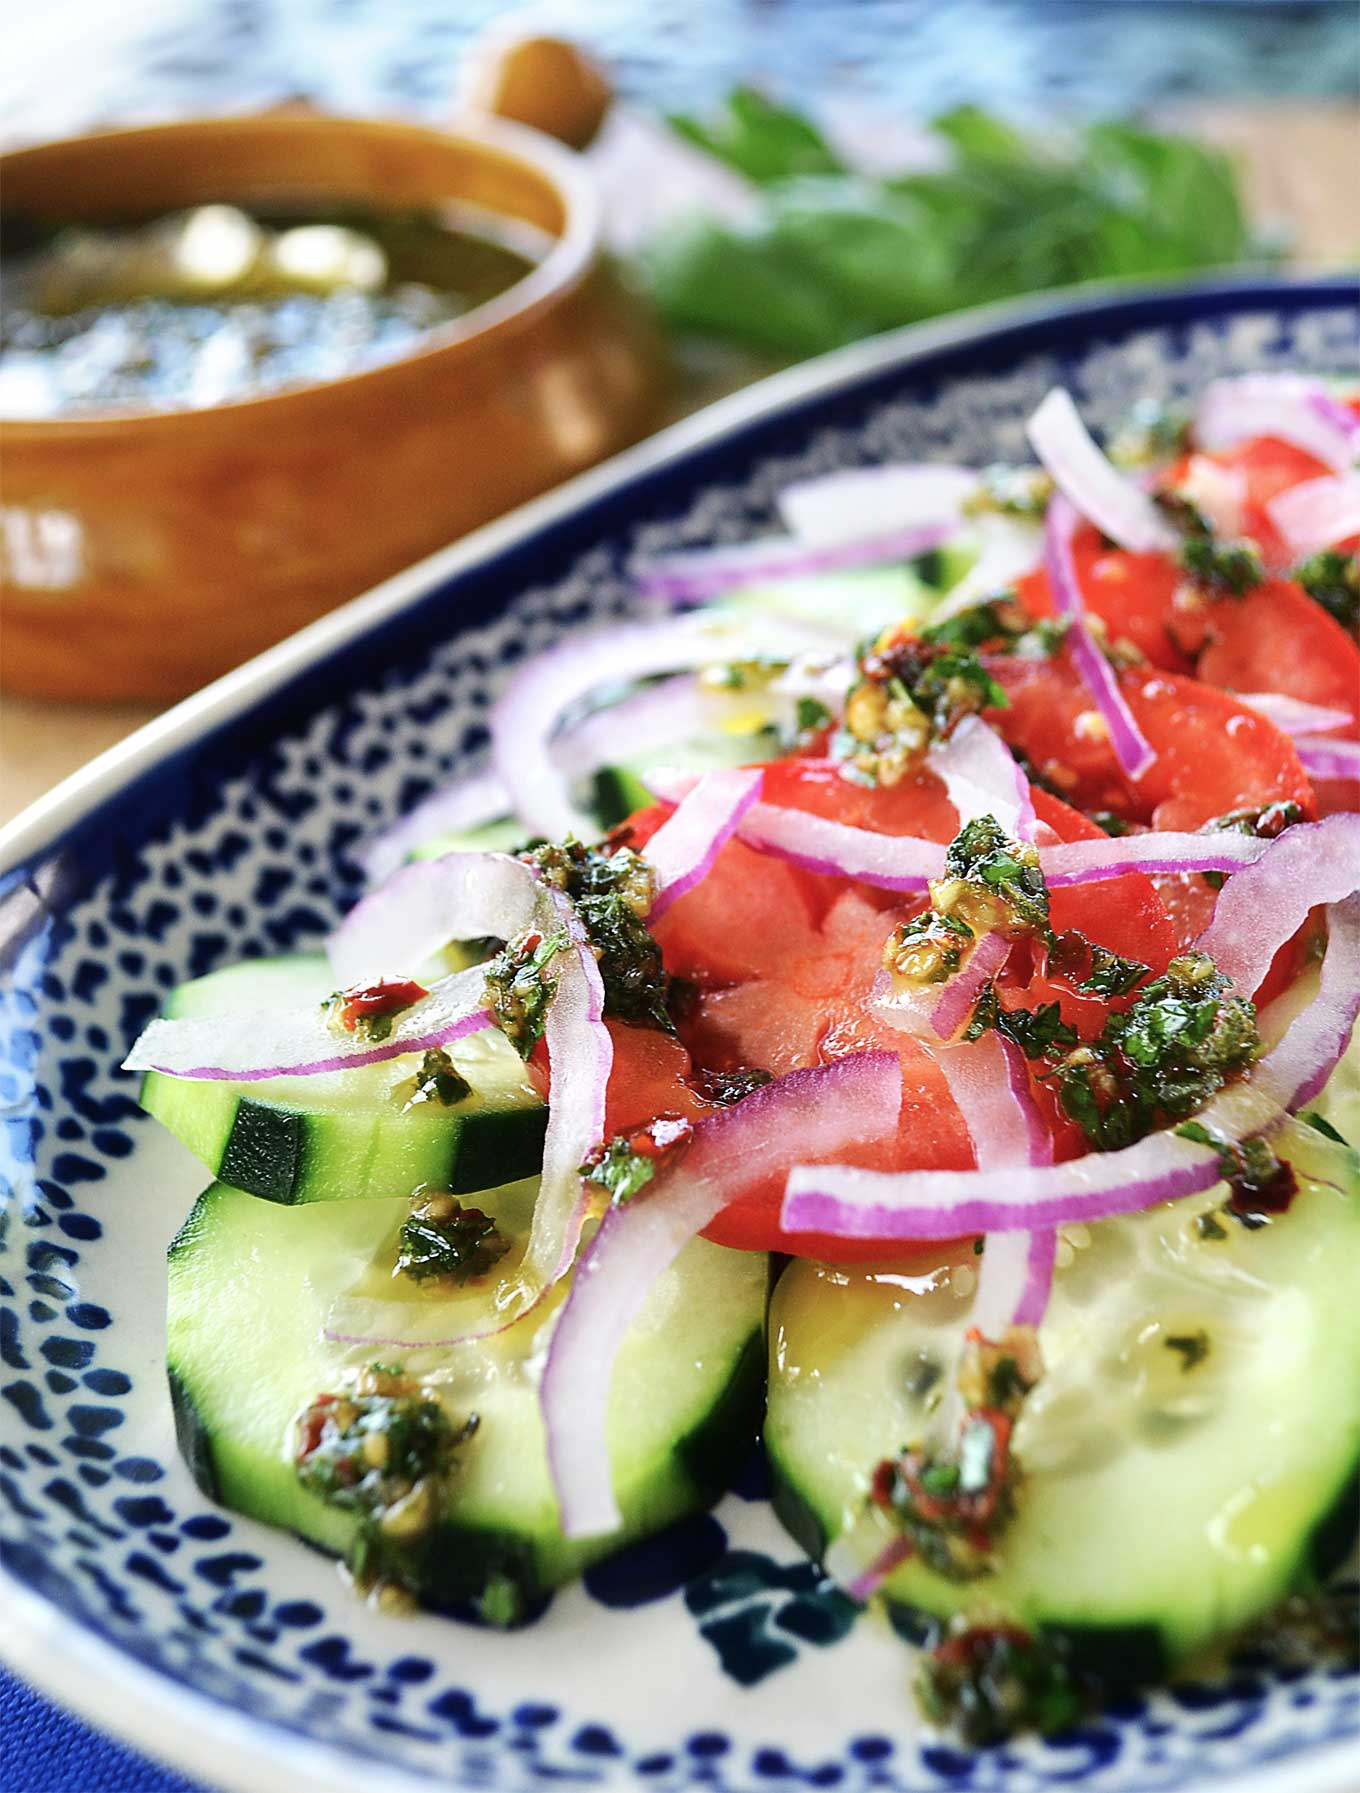 Cucumber & Tomato Salad with Chimichurri Sauce | rusticplate.com